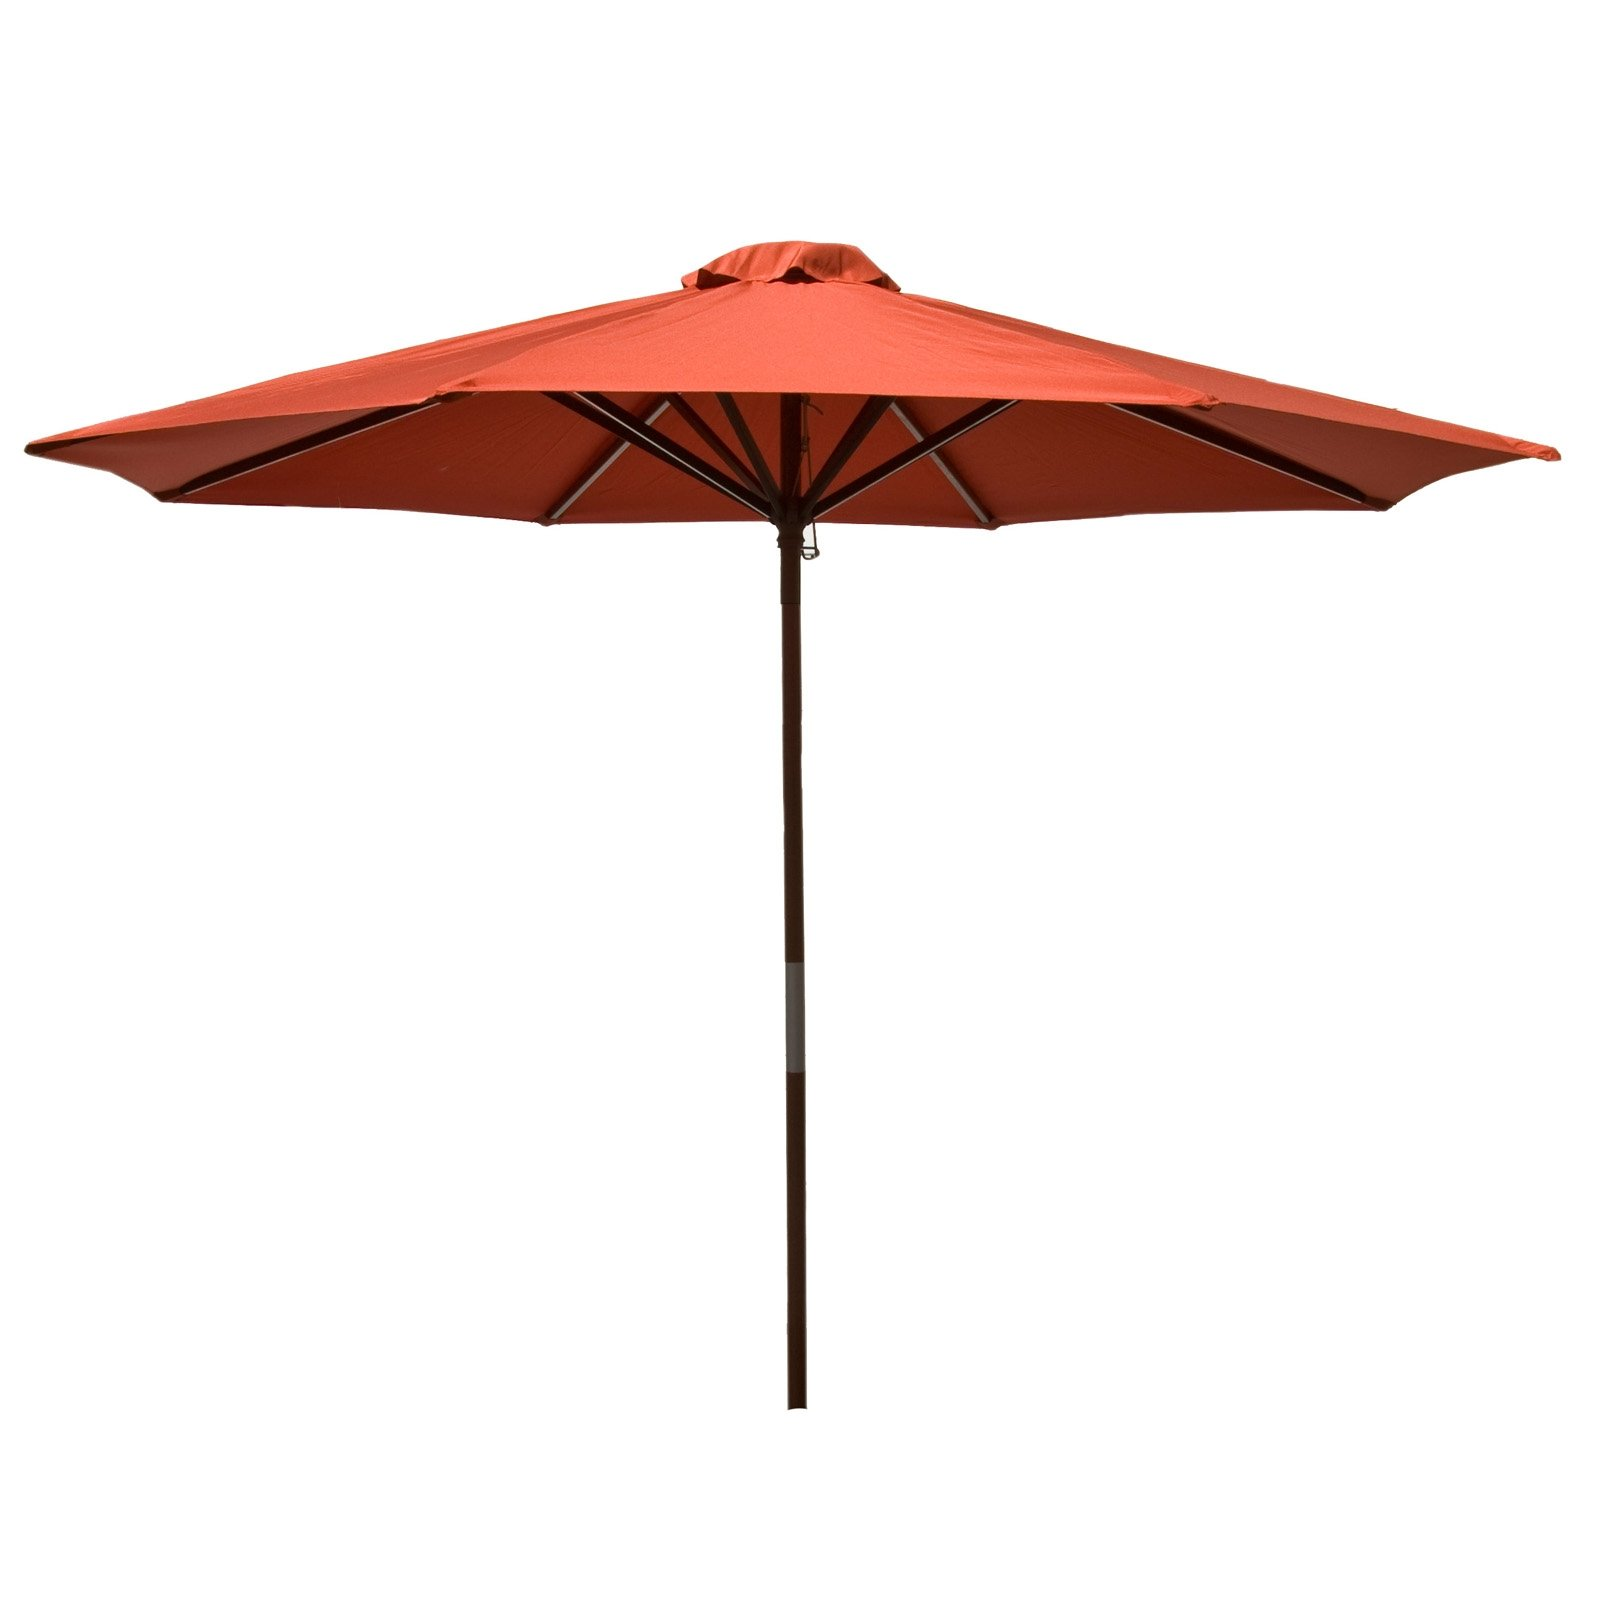 Classic Wood 9 foot Market Patio Umbrella - Chili